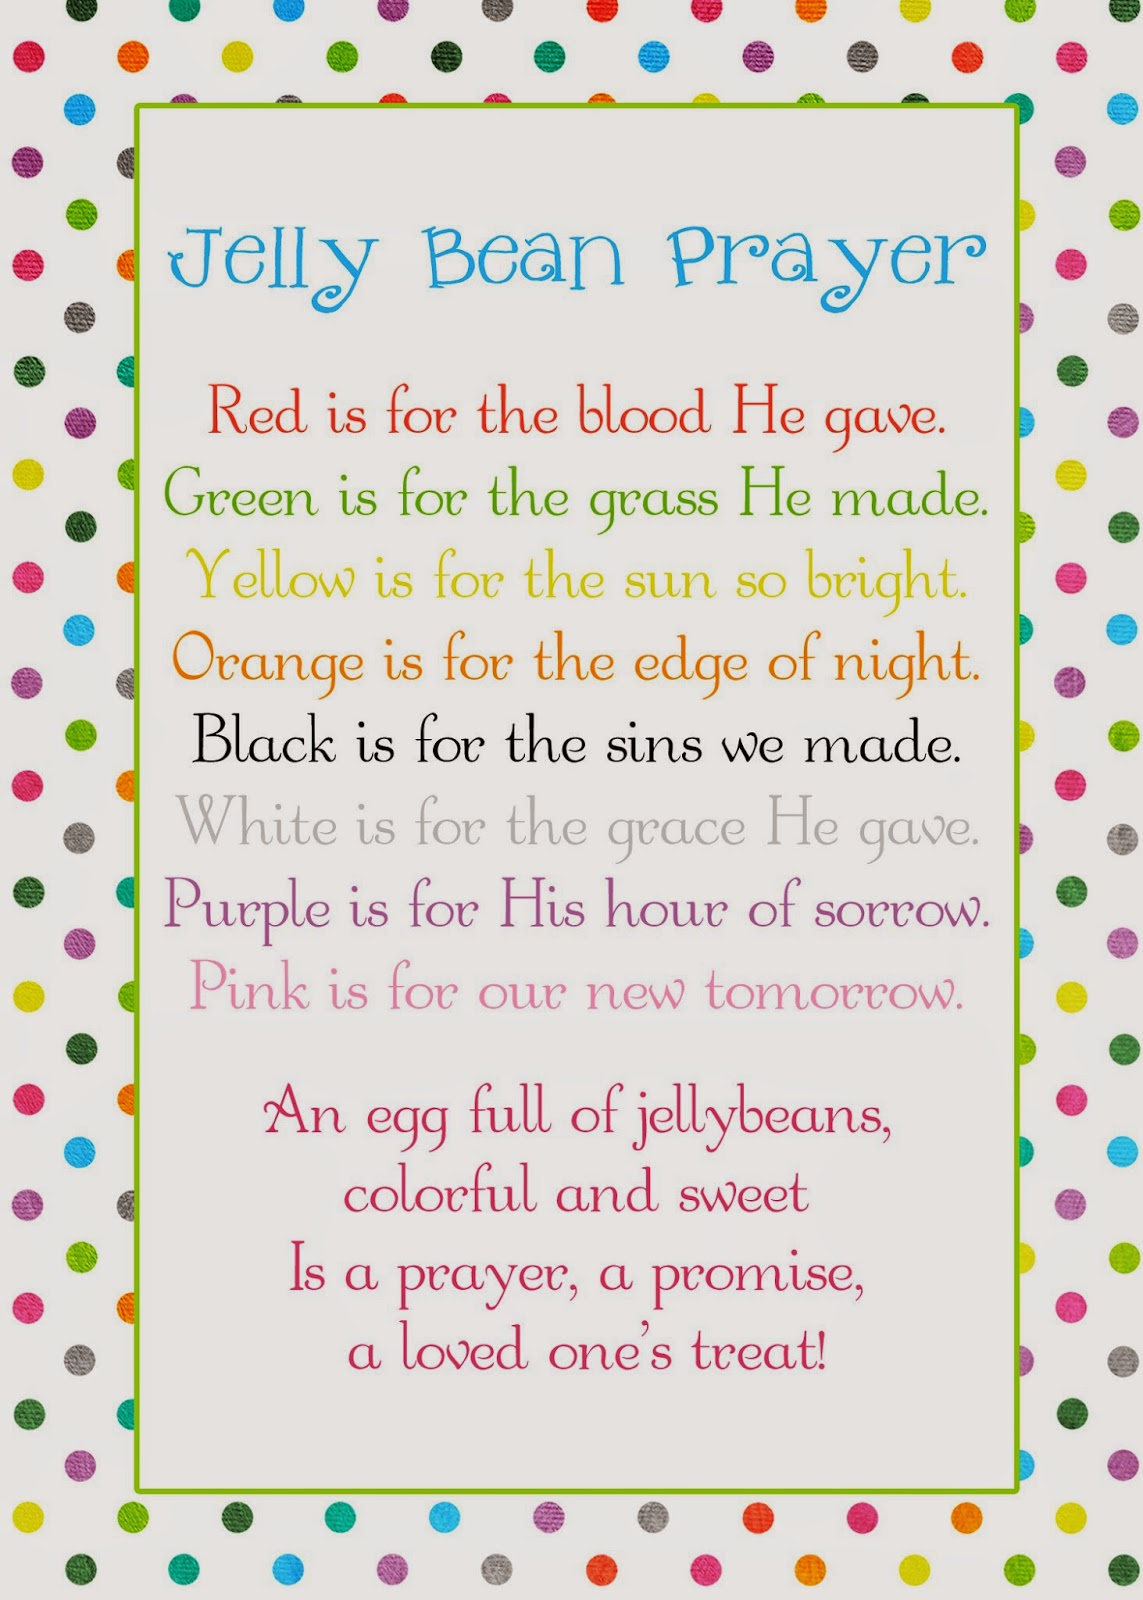 picture about Jelly Bean Prayer Printable named A Pocket complete of LDS prints: Jelly Bean Prayer poem - Easter